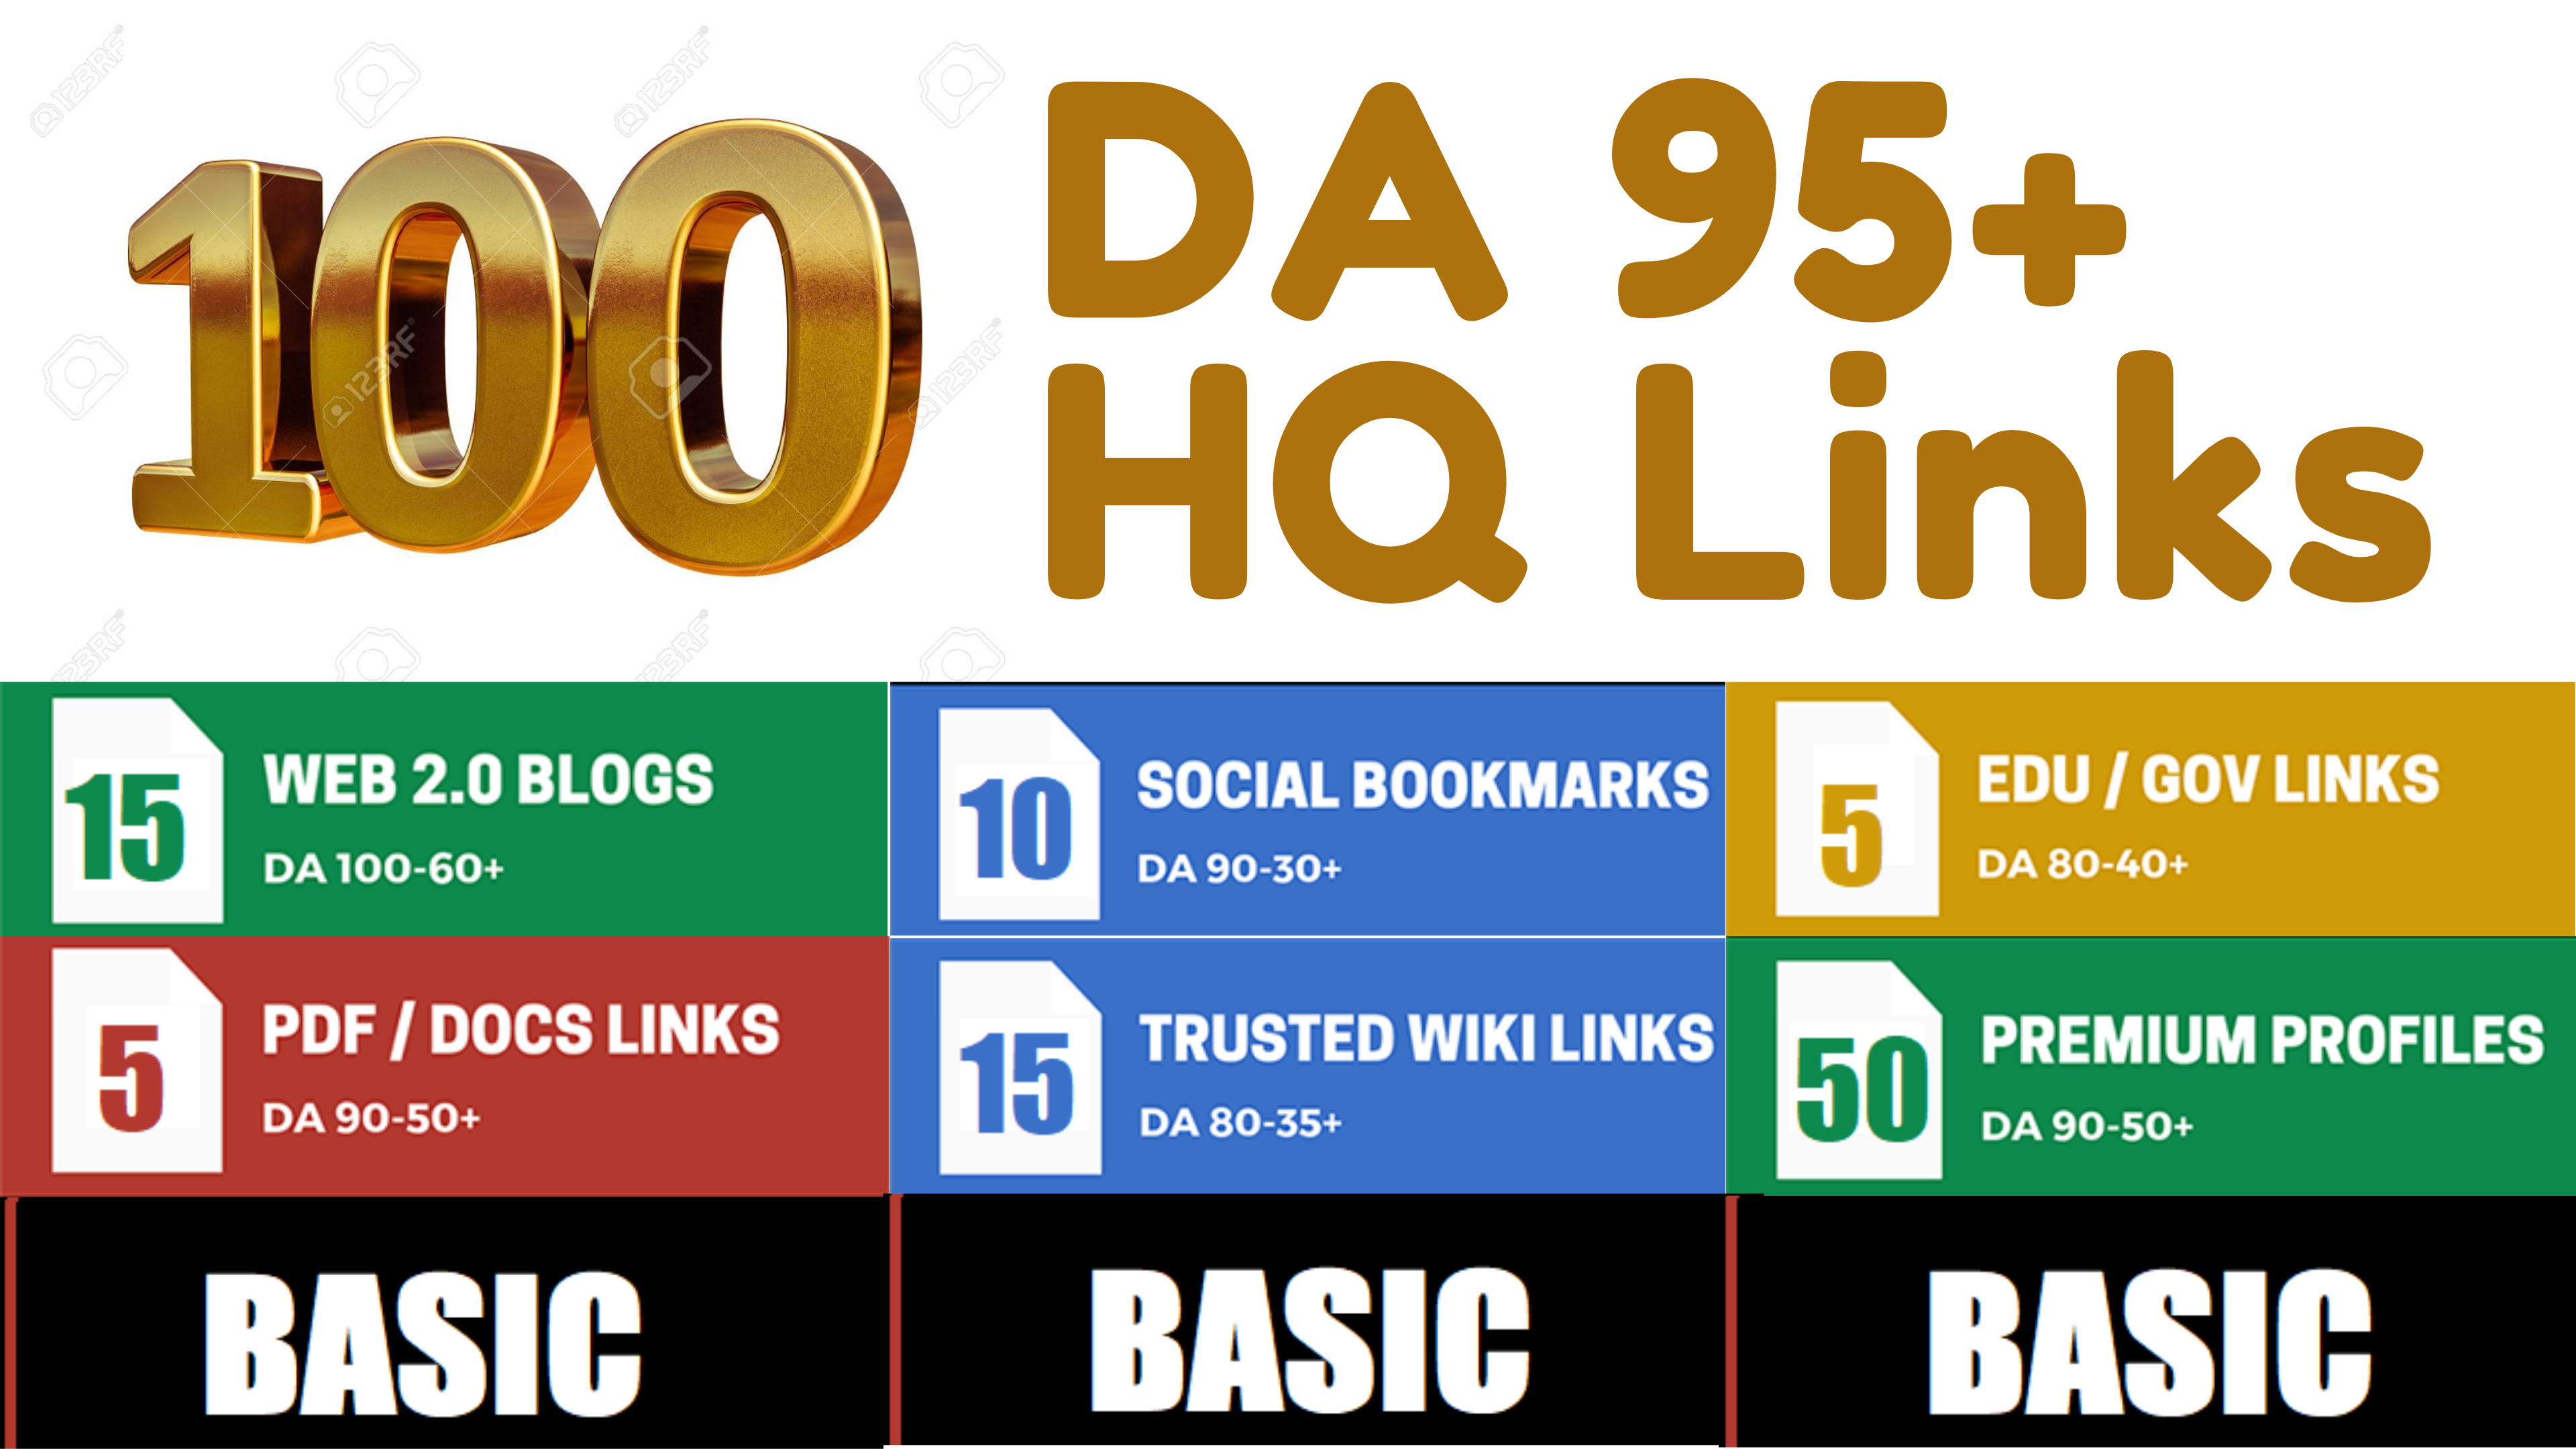 I will 100+ High DA 90+ HQ Links to RANK your website by boosting your web authority for 12